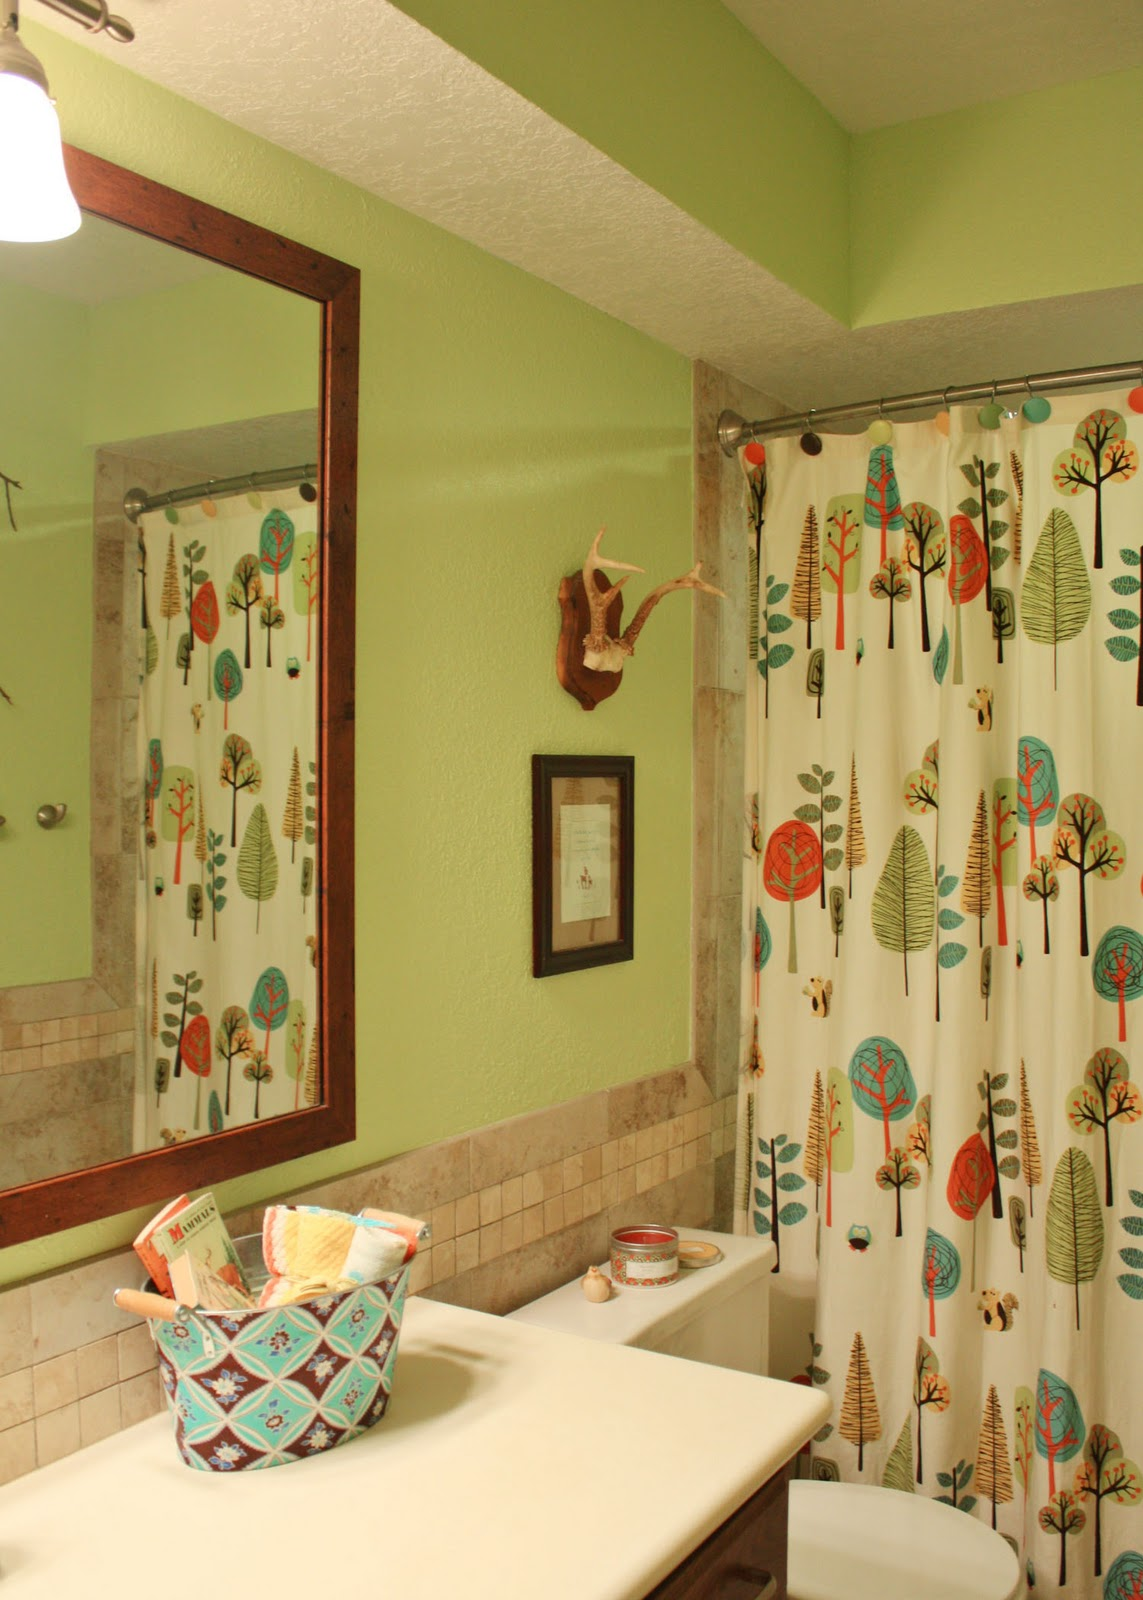 Amy j delightful blog home sweet home tour guest kids bathroom - Kids bathroom design ...